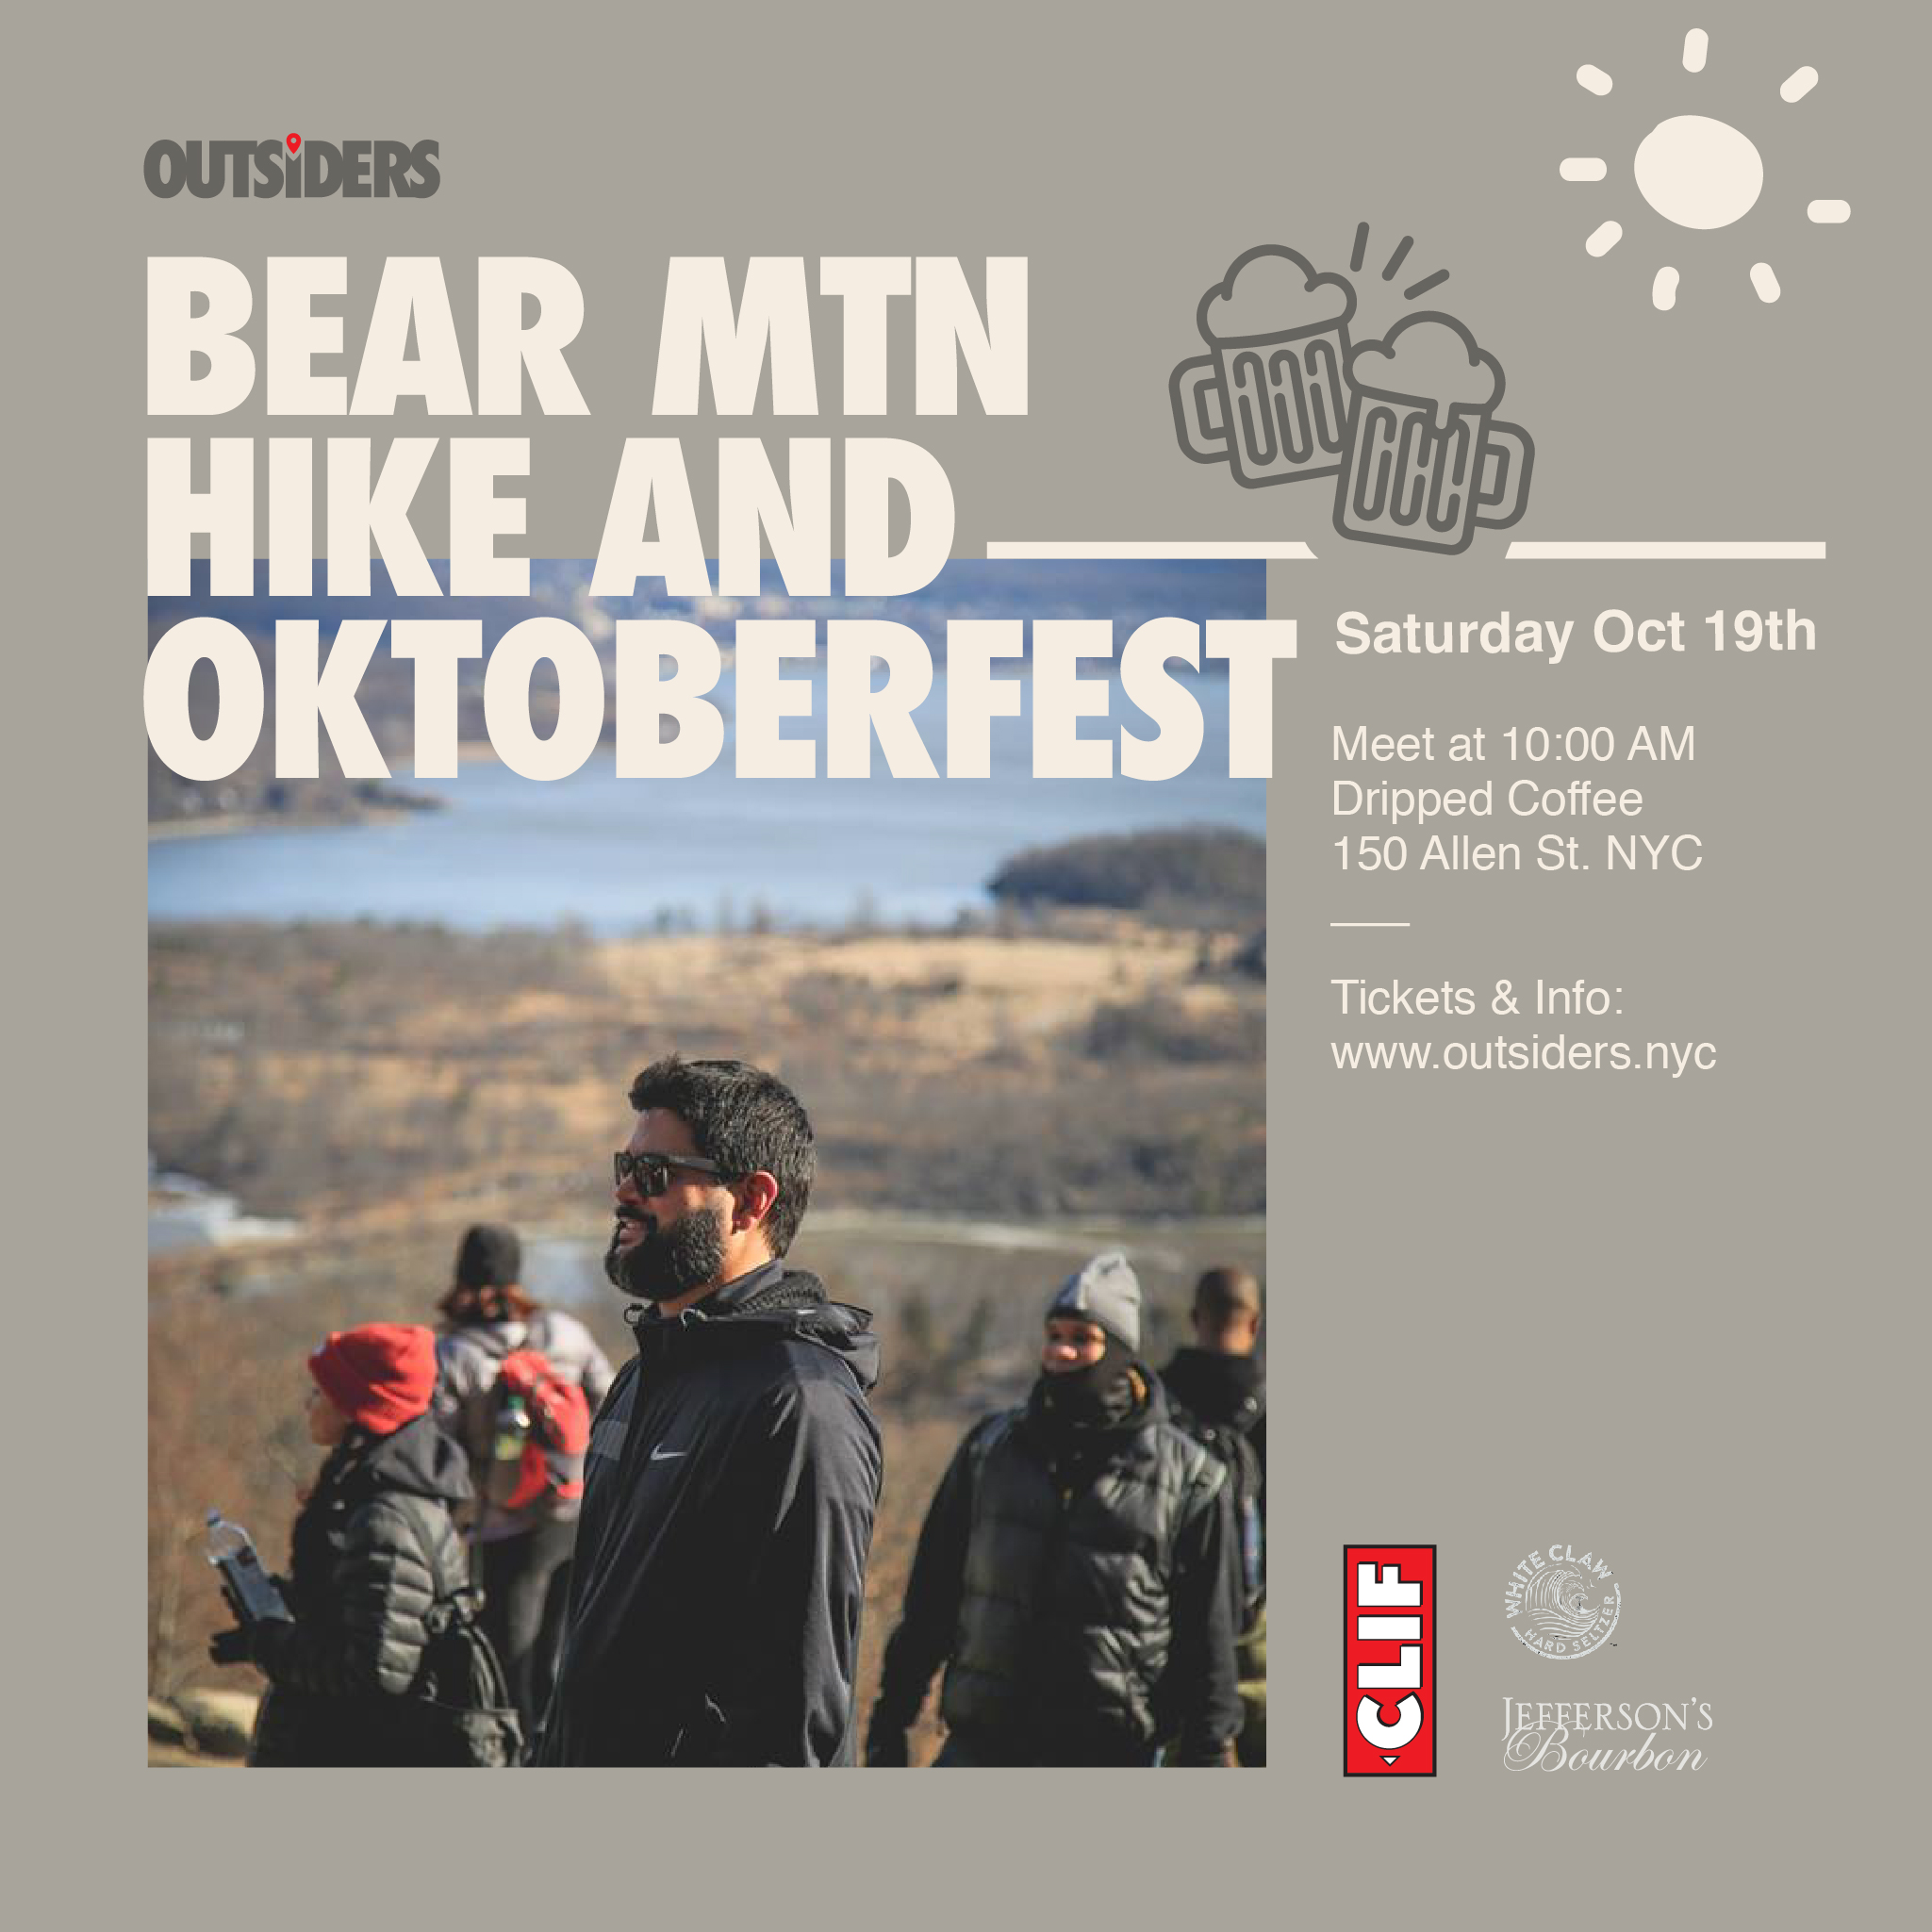 Bear Mountain Hike & Oktoberfest